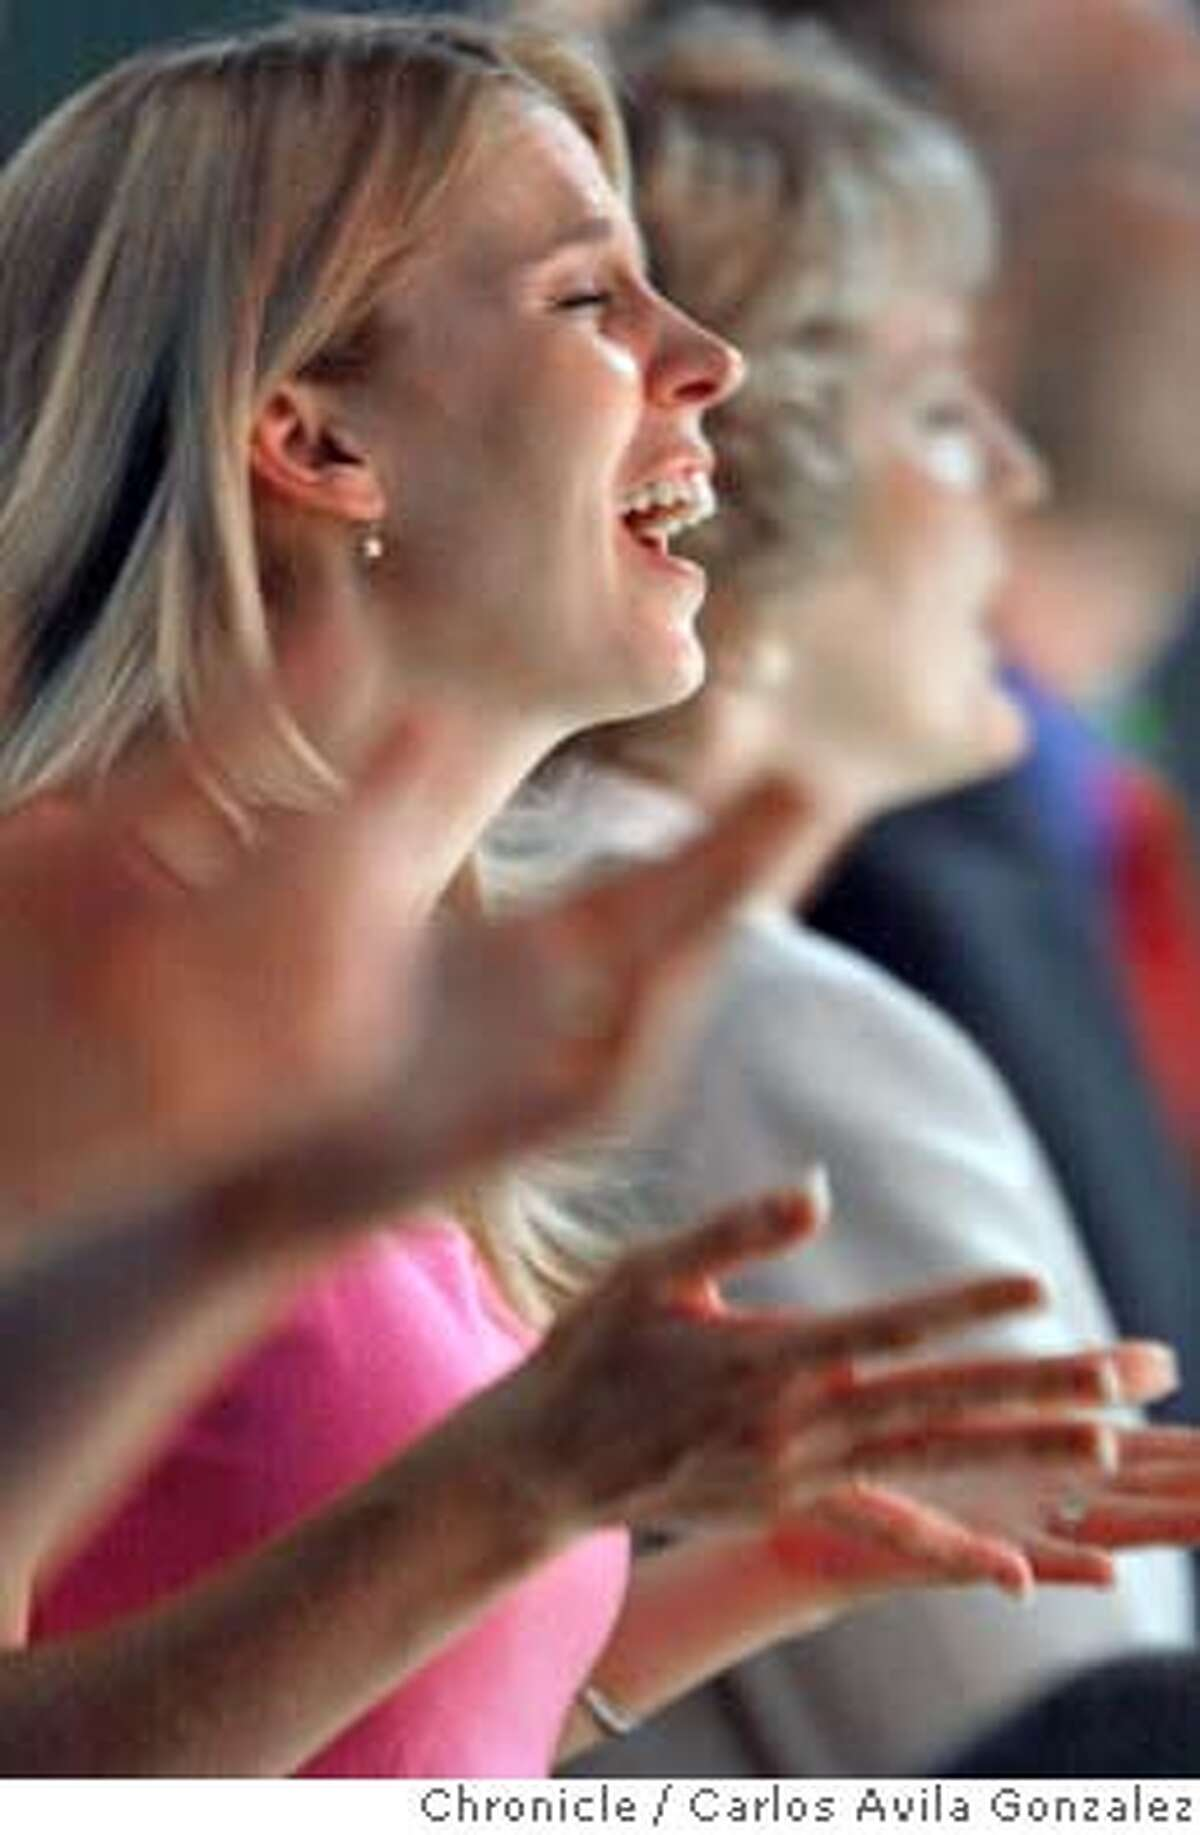 A congregant sings along during the International Church of the Foursquare Gospel's Annual Convention at the San Francsico Hilton in San Francisco, Ca., on Tuesday, June 1, 2004. Photo taken on 06/01/04 in San Francisco, Ca. Photo By Carlos Avila Gonzalez / The San Francisco Chronicle